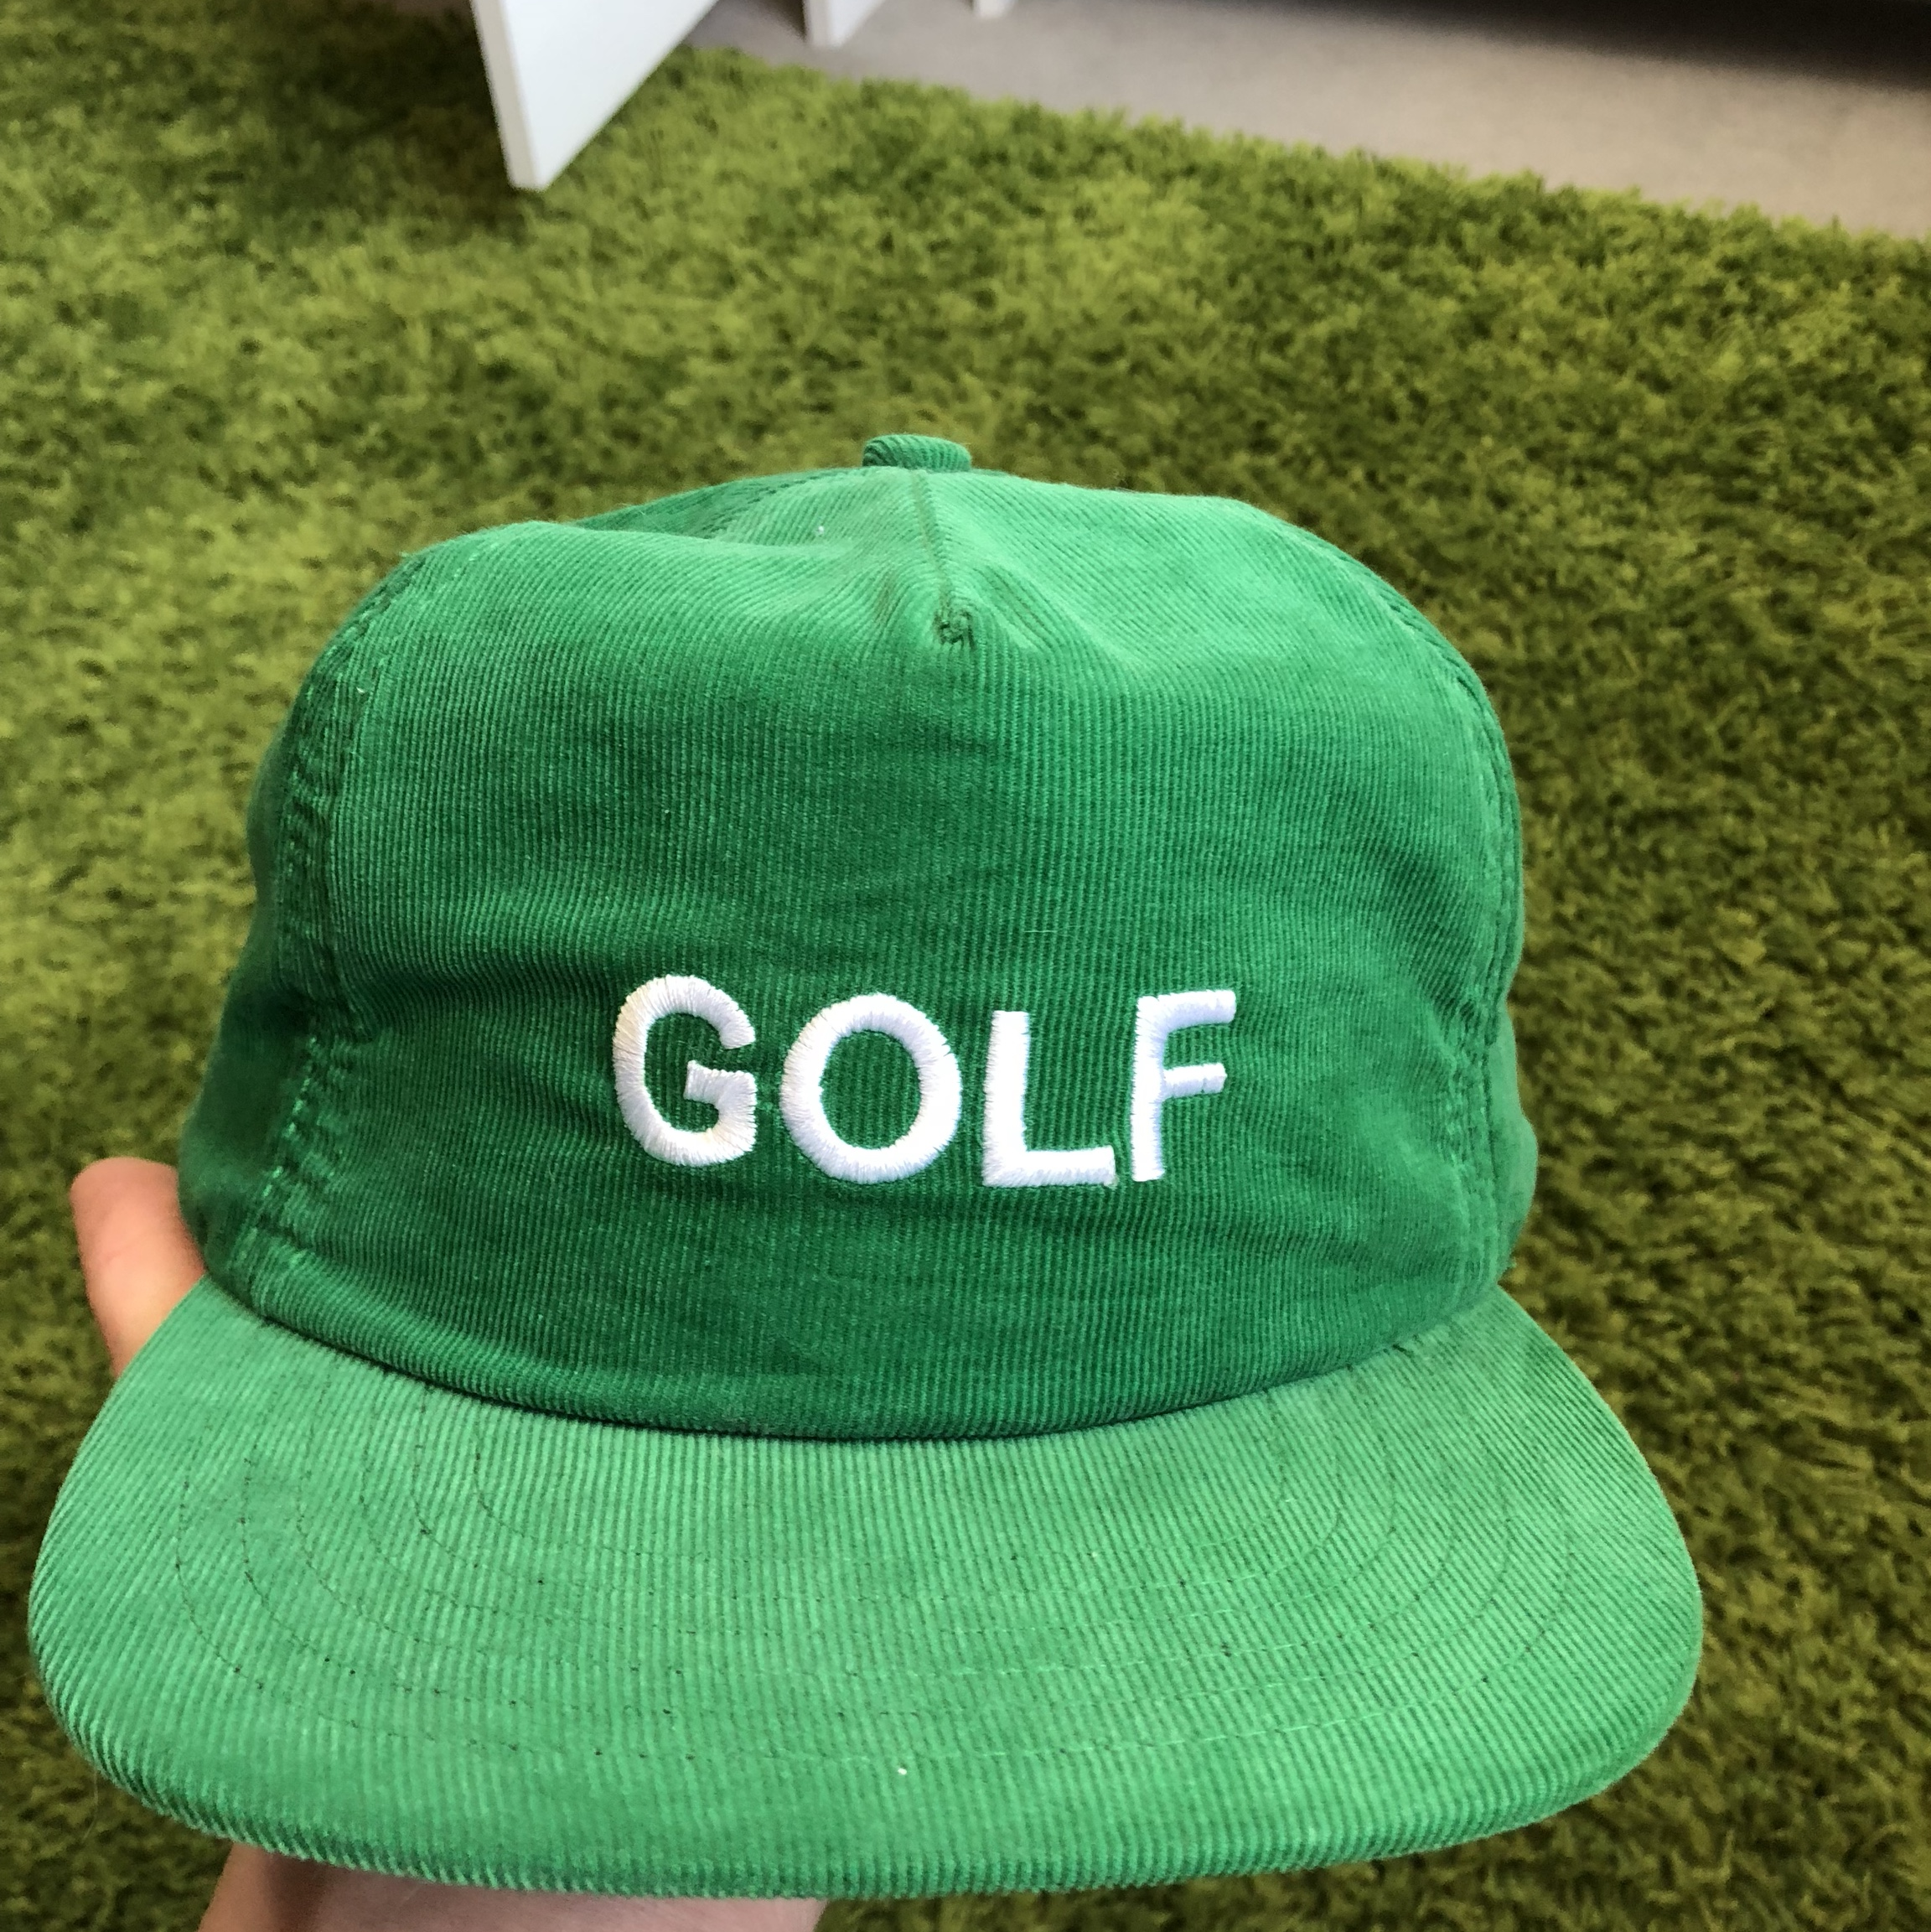 7920915ae OG RARE AS FUCK Golf Wang snapback. This was one of... - Depop